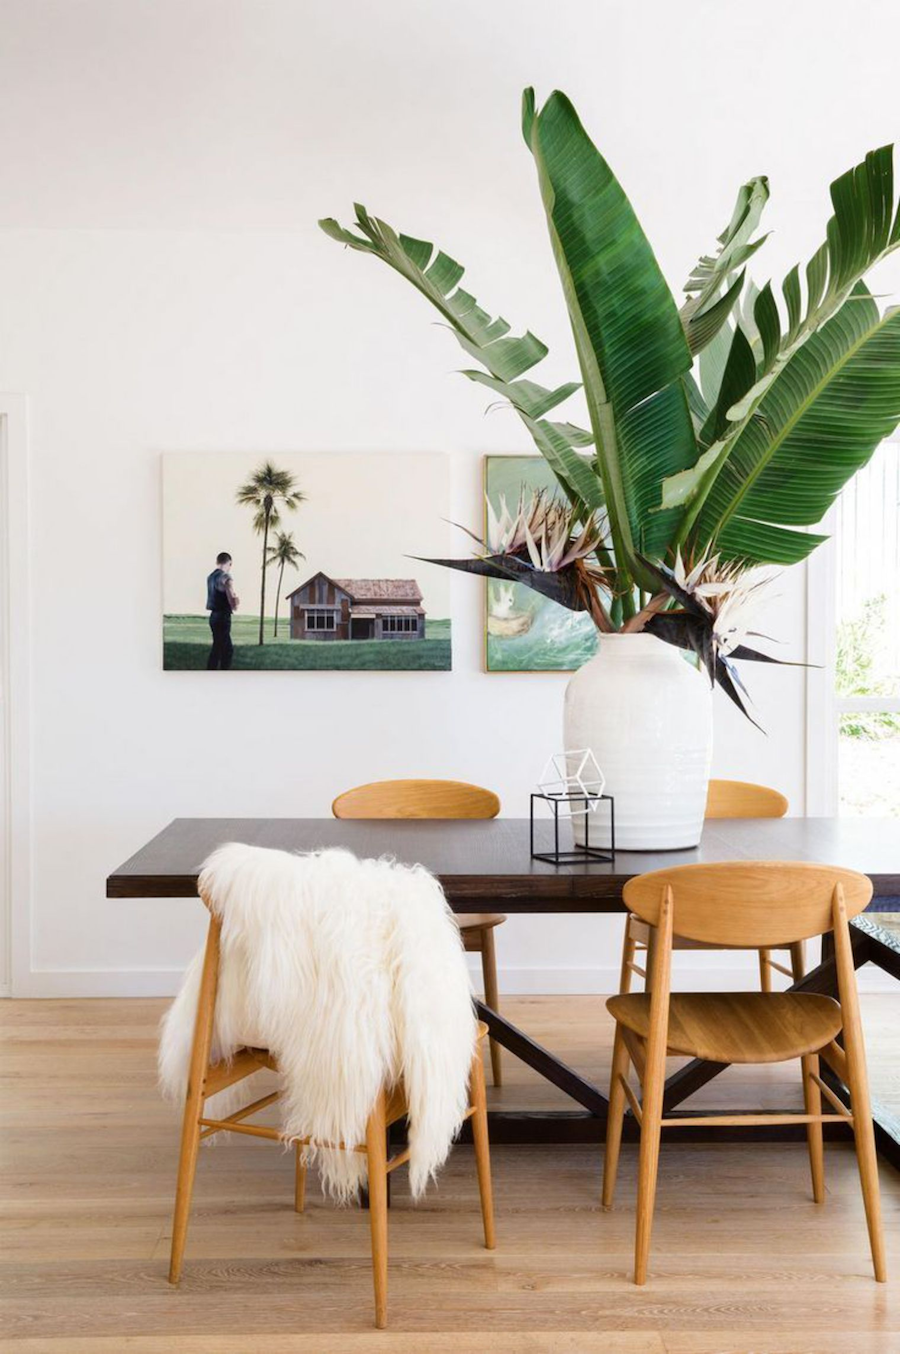 Large palm on dining table with scandinavian chairs